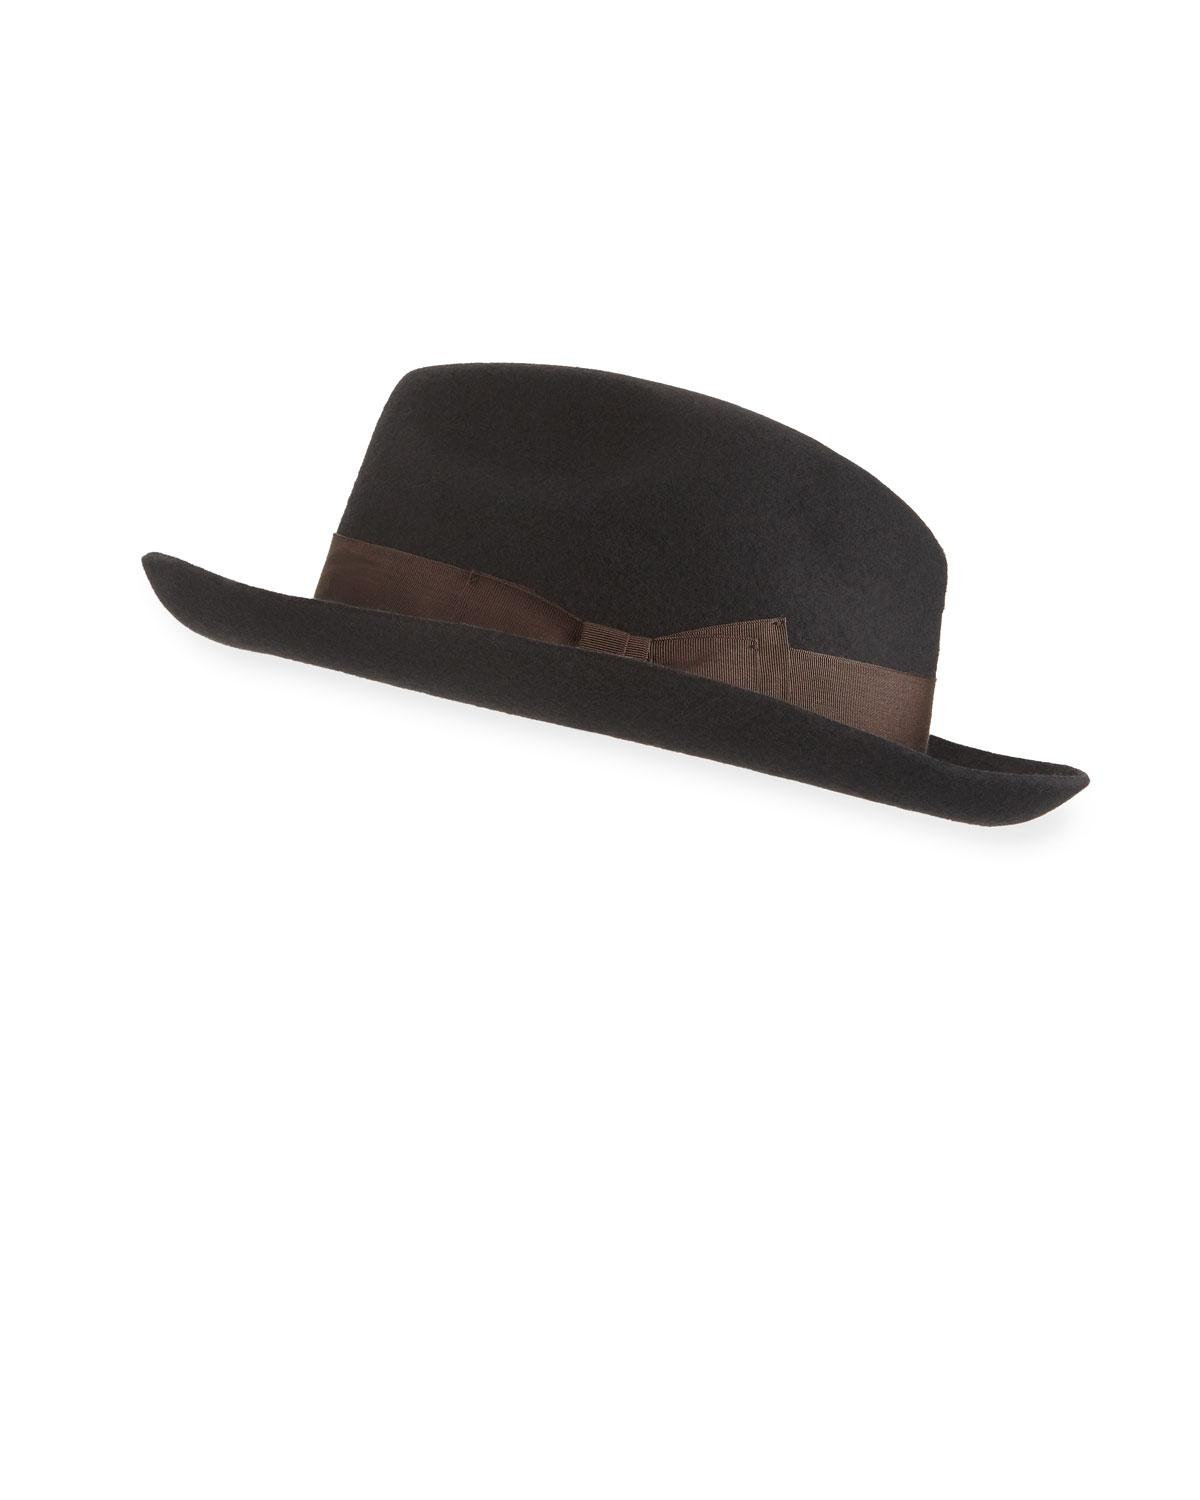 Lyst - Paul Smith Mayfair Fedora Hat in Black for Men cb2fc035a1cb